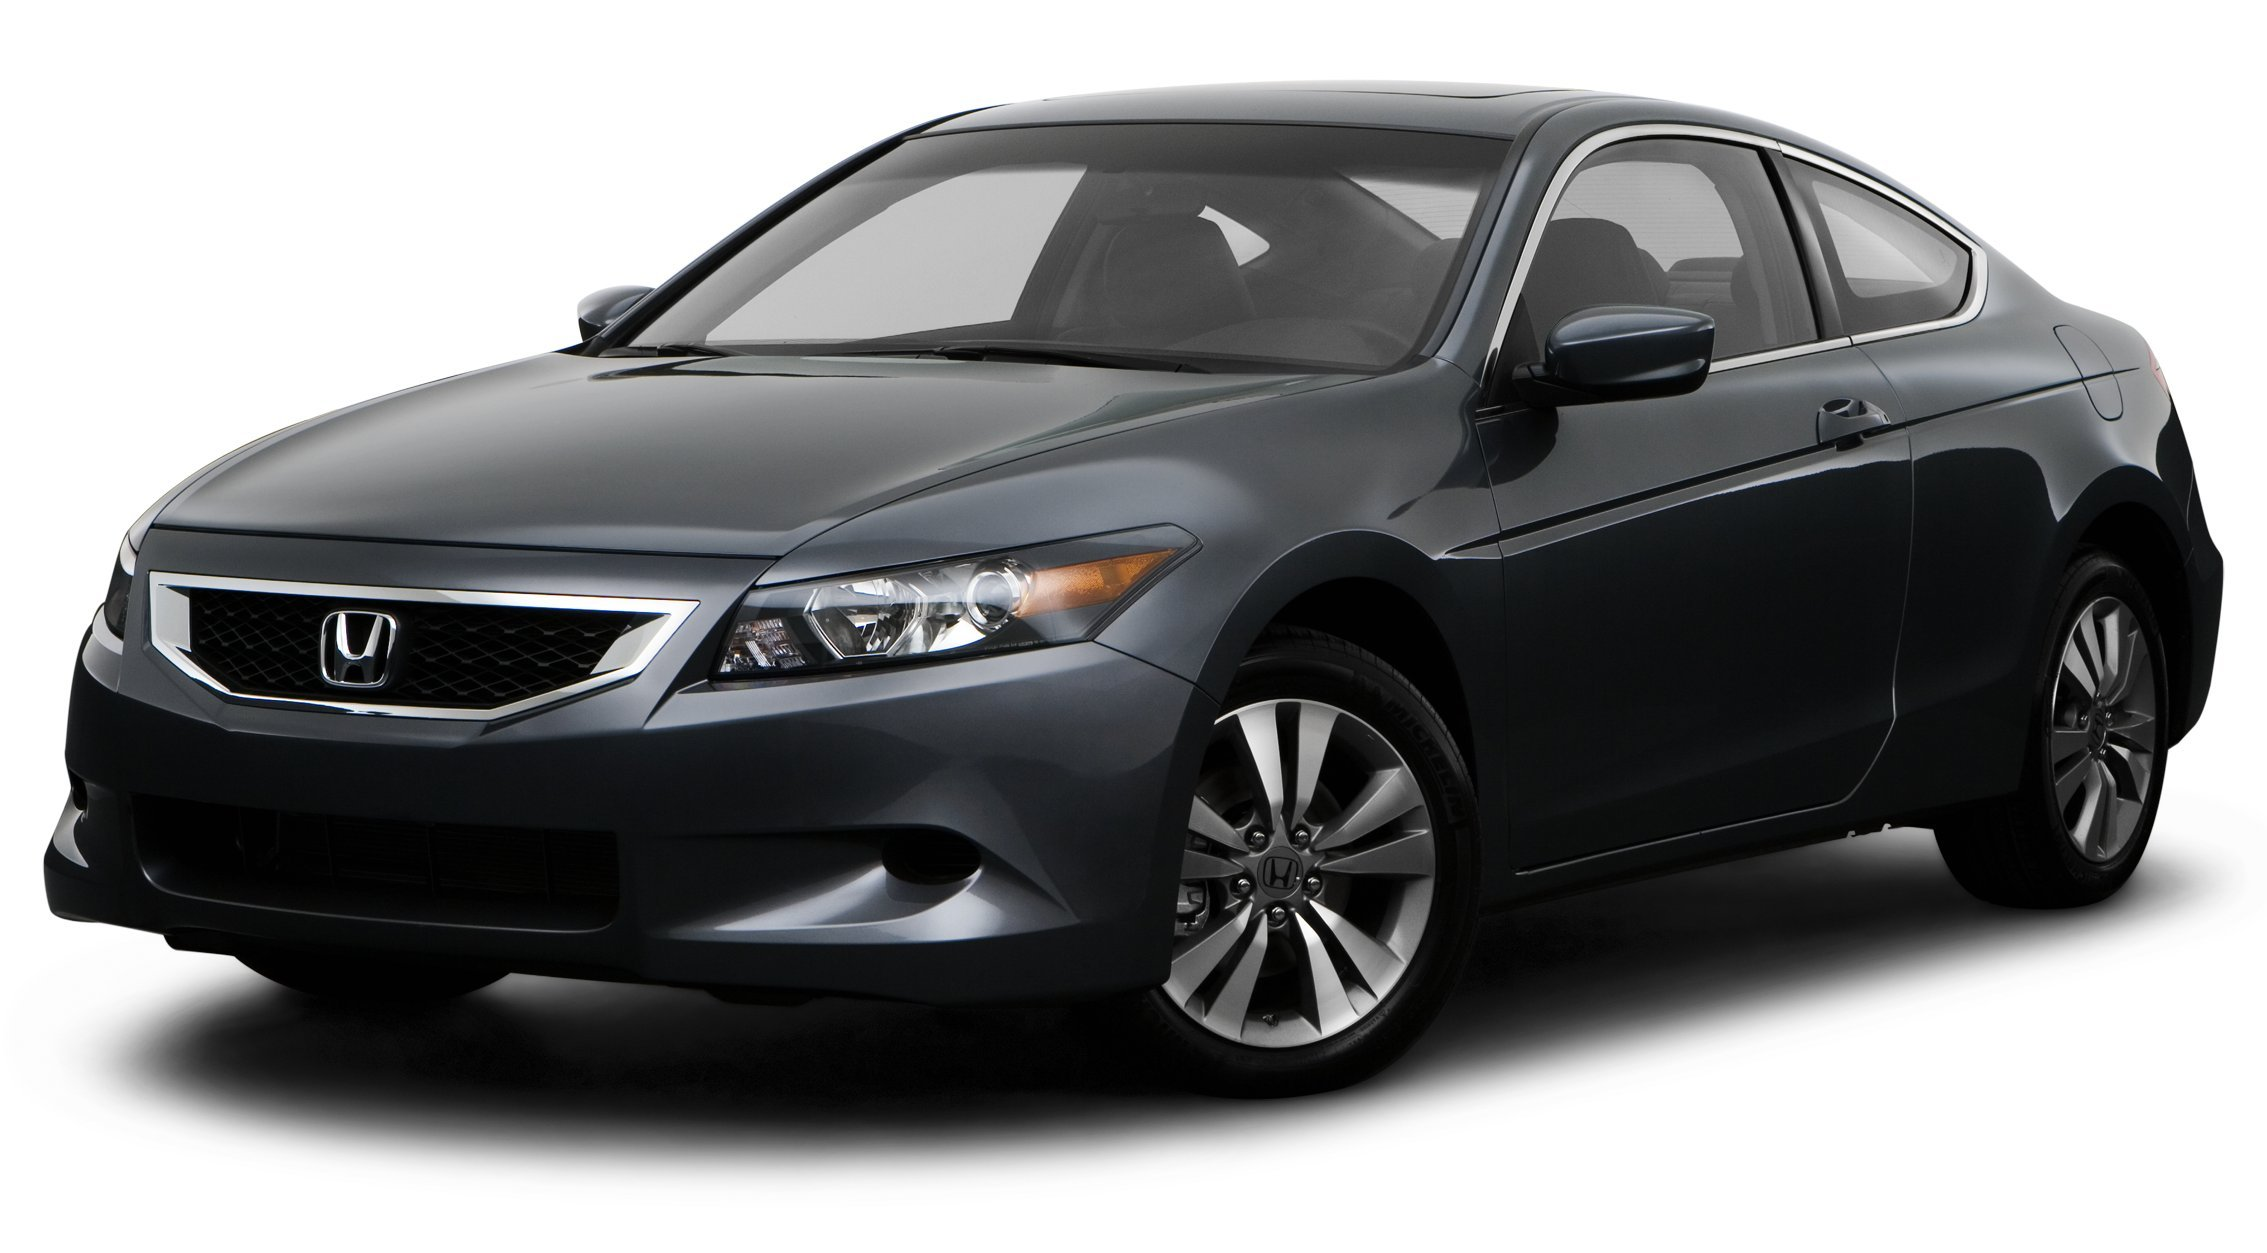 Amazoncom 2008 Honda Accord Reviews Images and Specs Vehicles